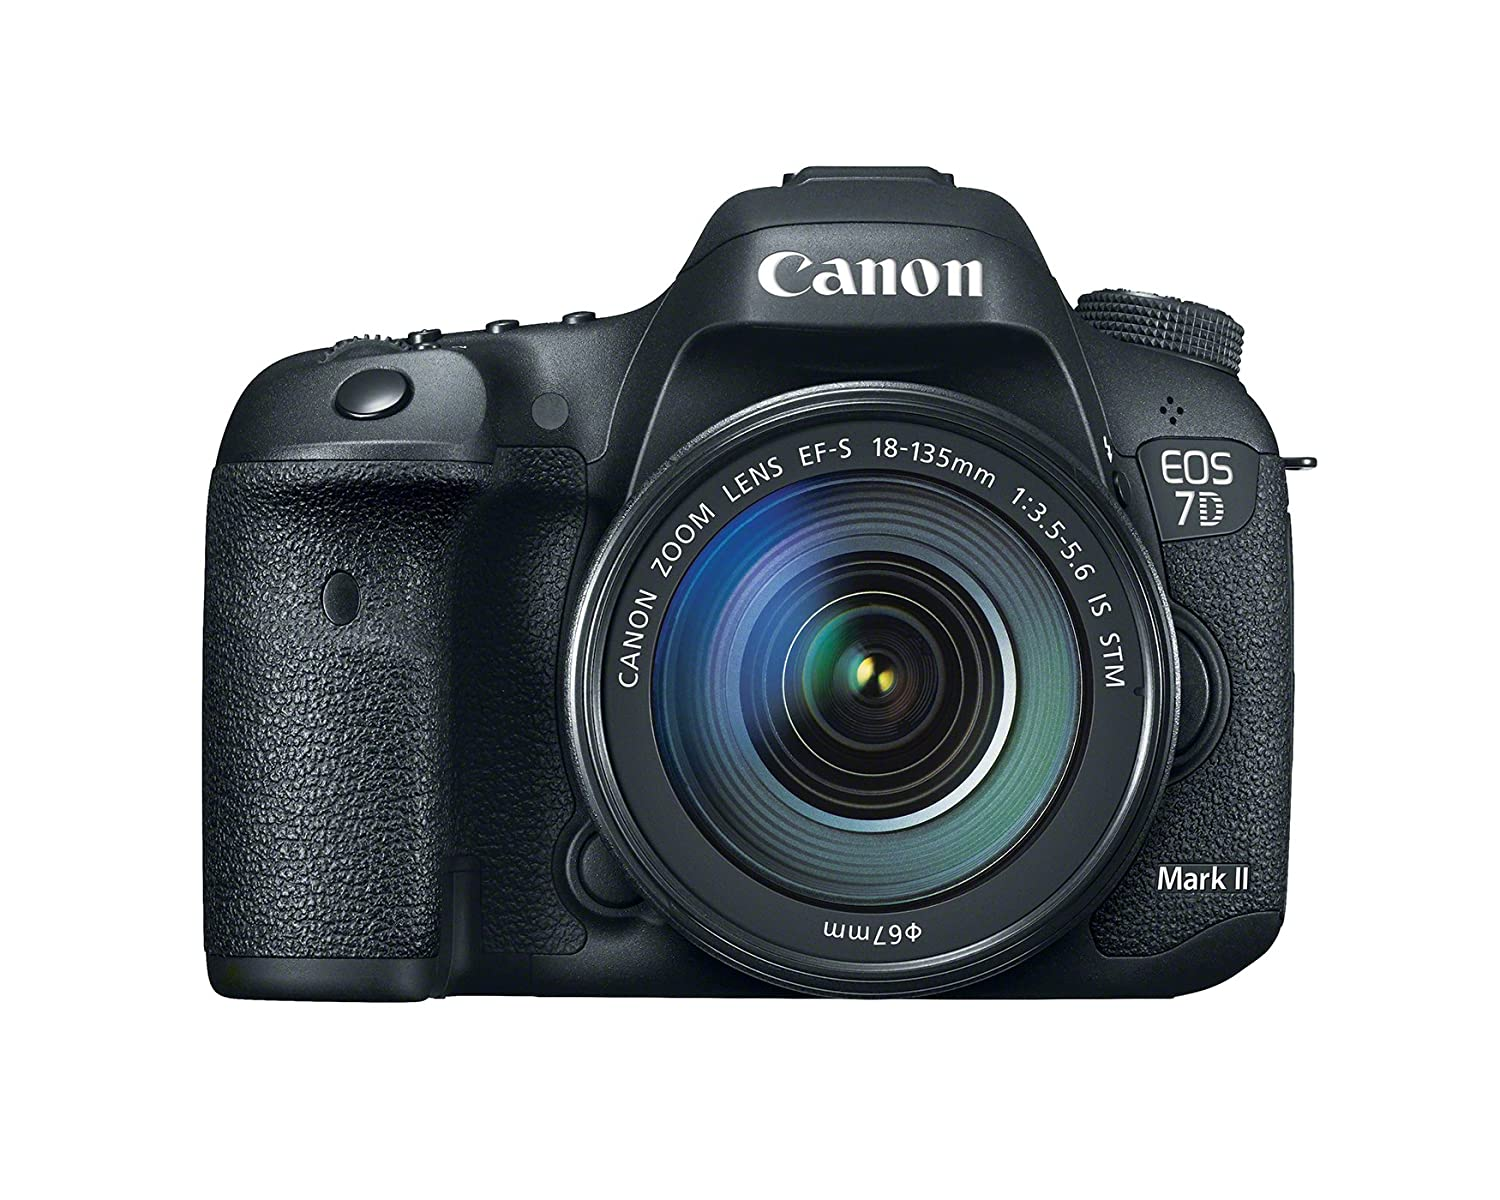 Canon Eos 7d Mark Ii Digital Slr Camera With 18 135mm Very Simple Touch Switch Using 4050 Cmos Buffer Is Stm Lens Photo